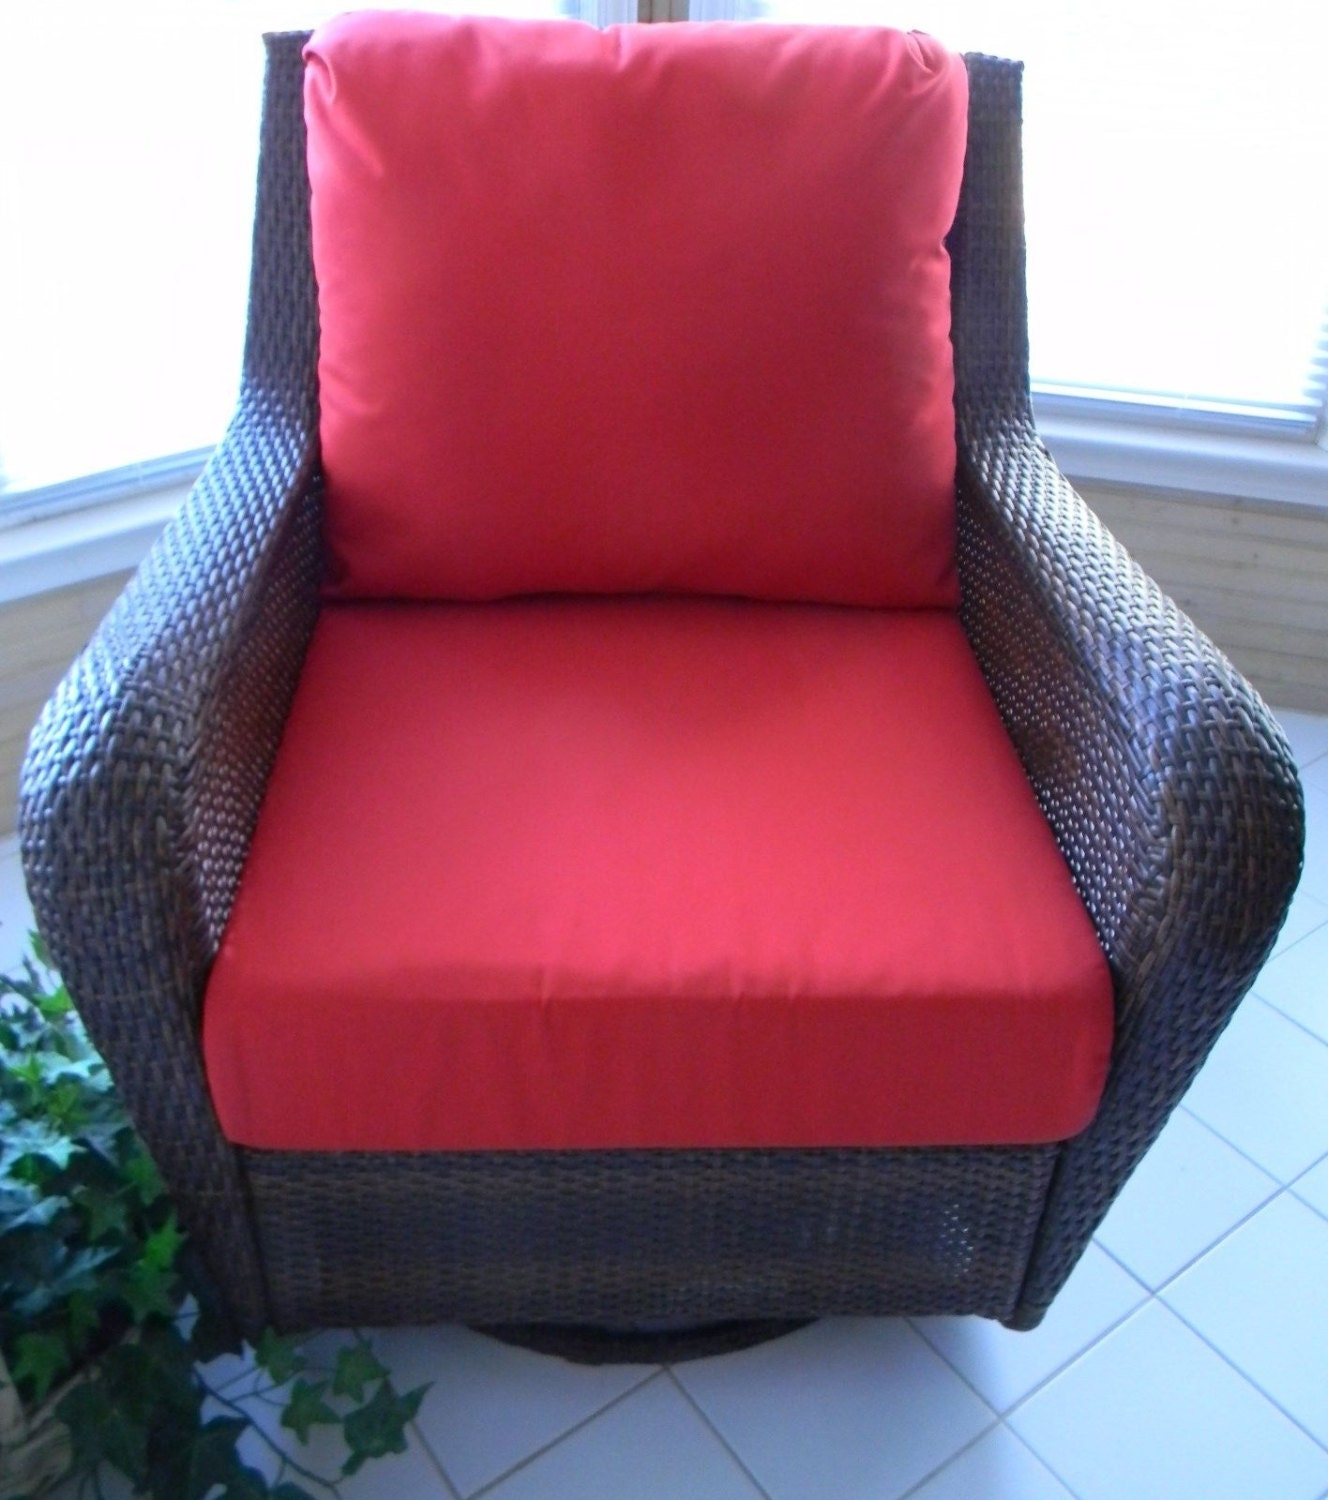 Red Cushion Set For Patio Indoor Outdoor Deep Seat Furniture